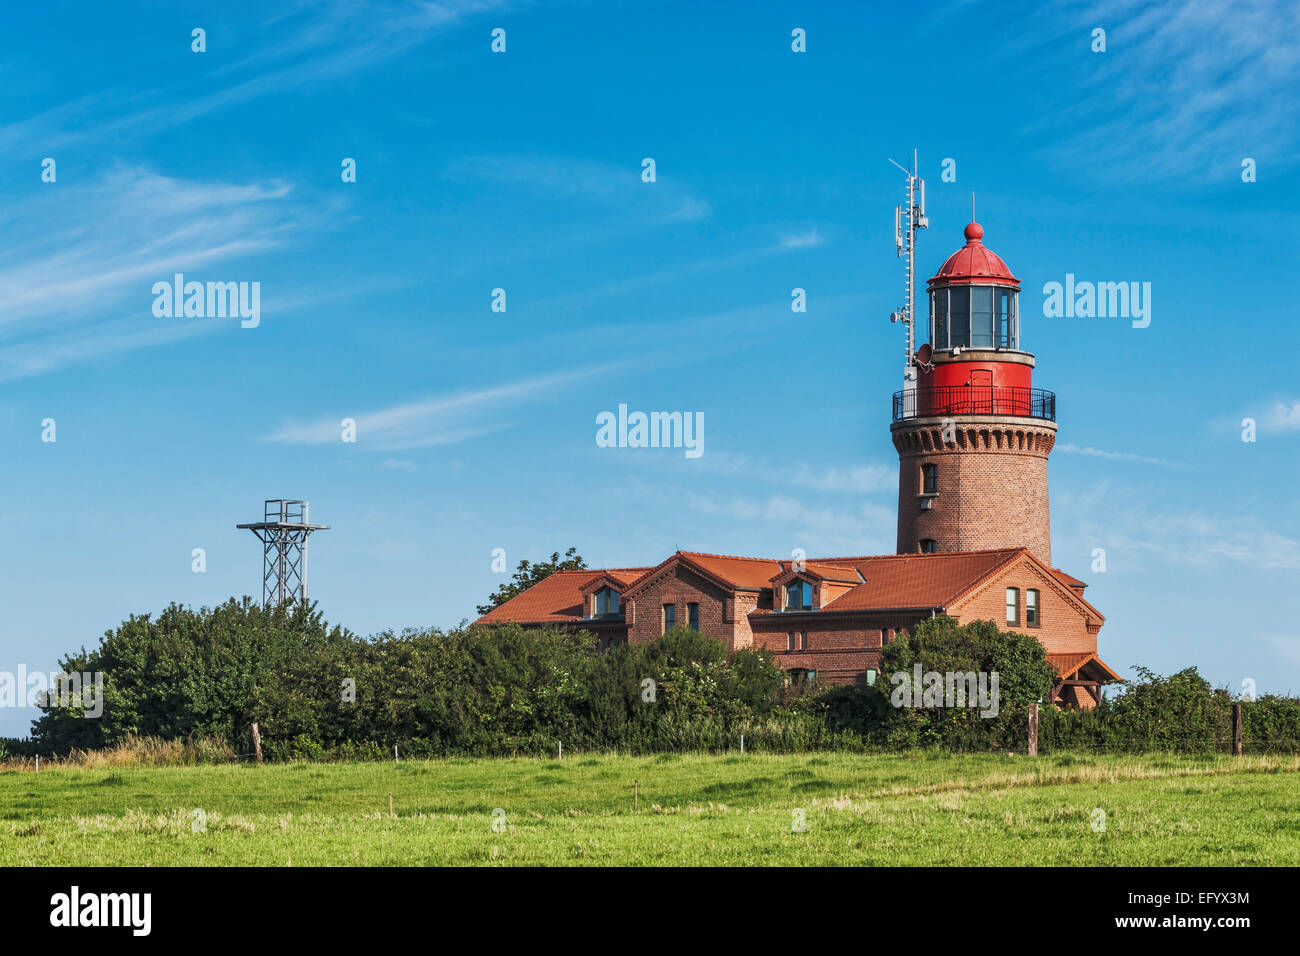 The lighthouse of Bastorf is located at the Baltic Sea, Rostock, Mecklenburg-Western Pomerania, Germany, Europe - Stock Image